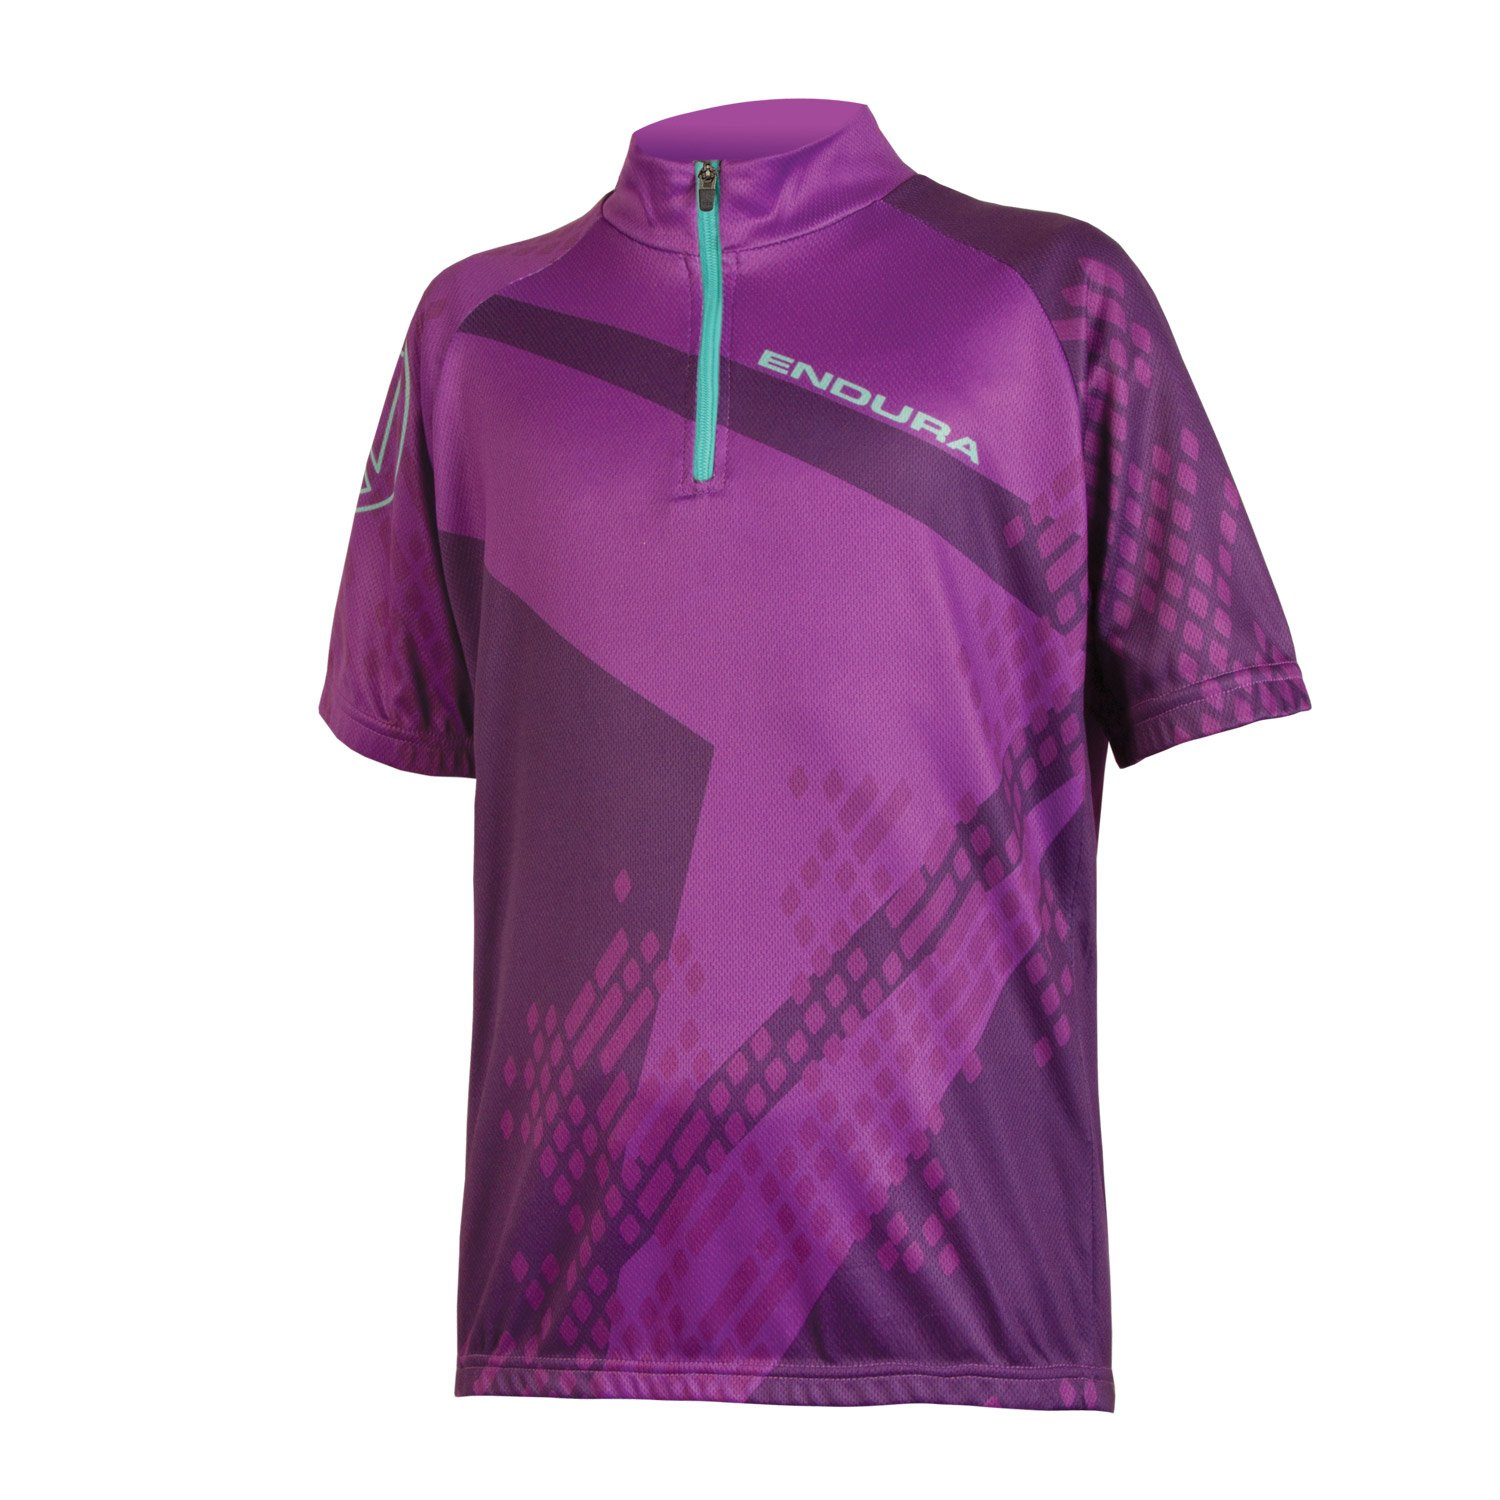 Endura Kids Ray Short Sleeve Cycling Jersey Purple, Large by Endura (Image #1)